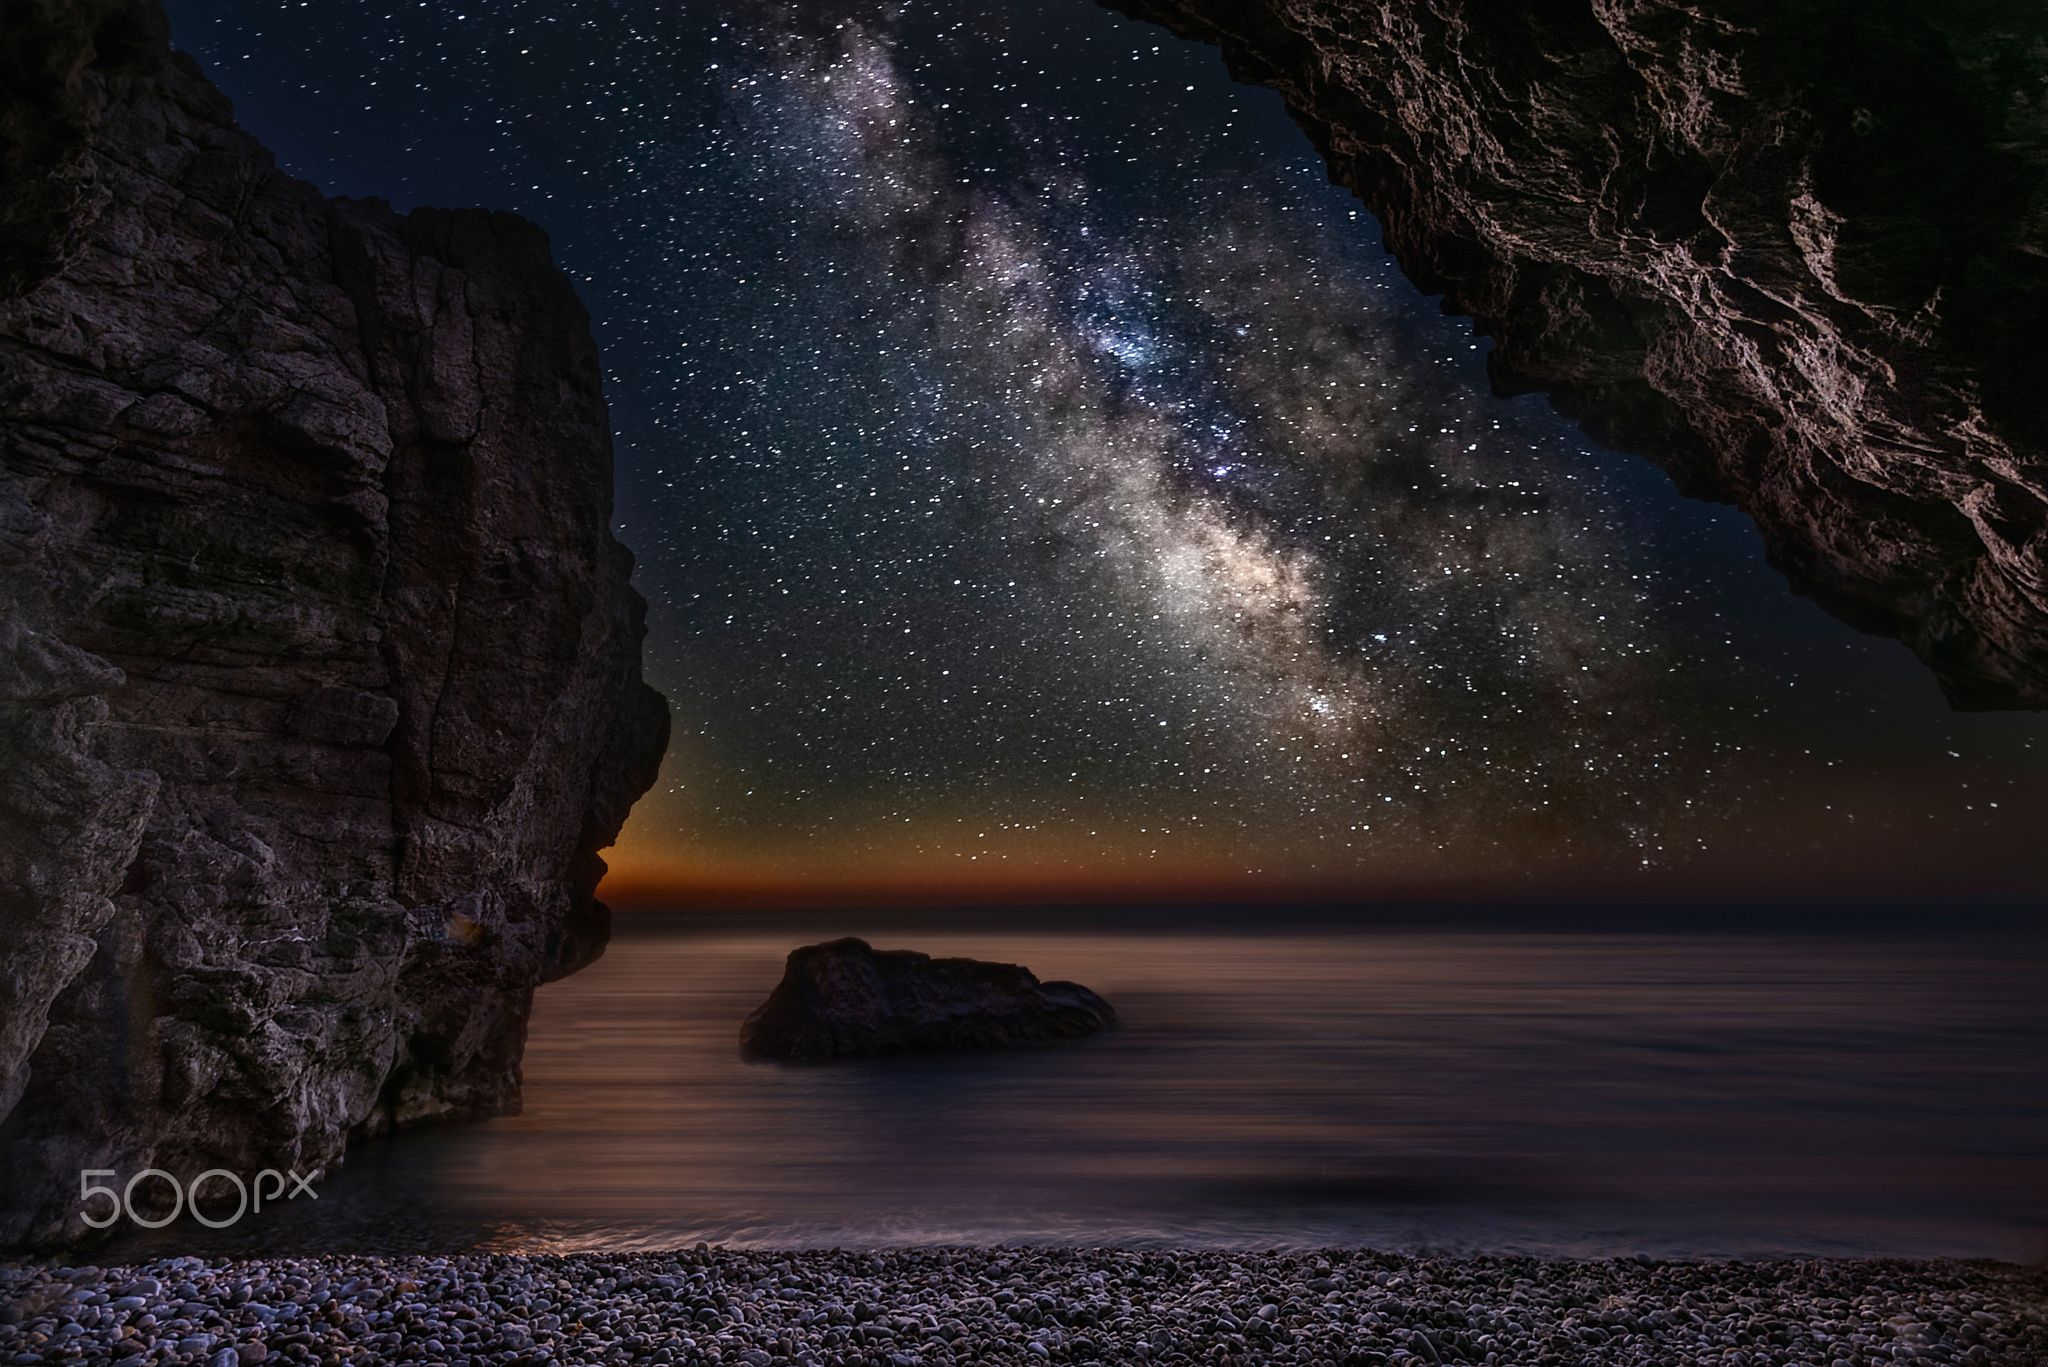 The Cave - Milky way in RHODES